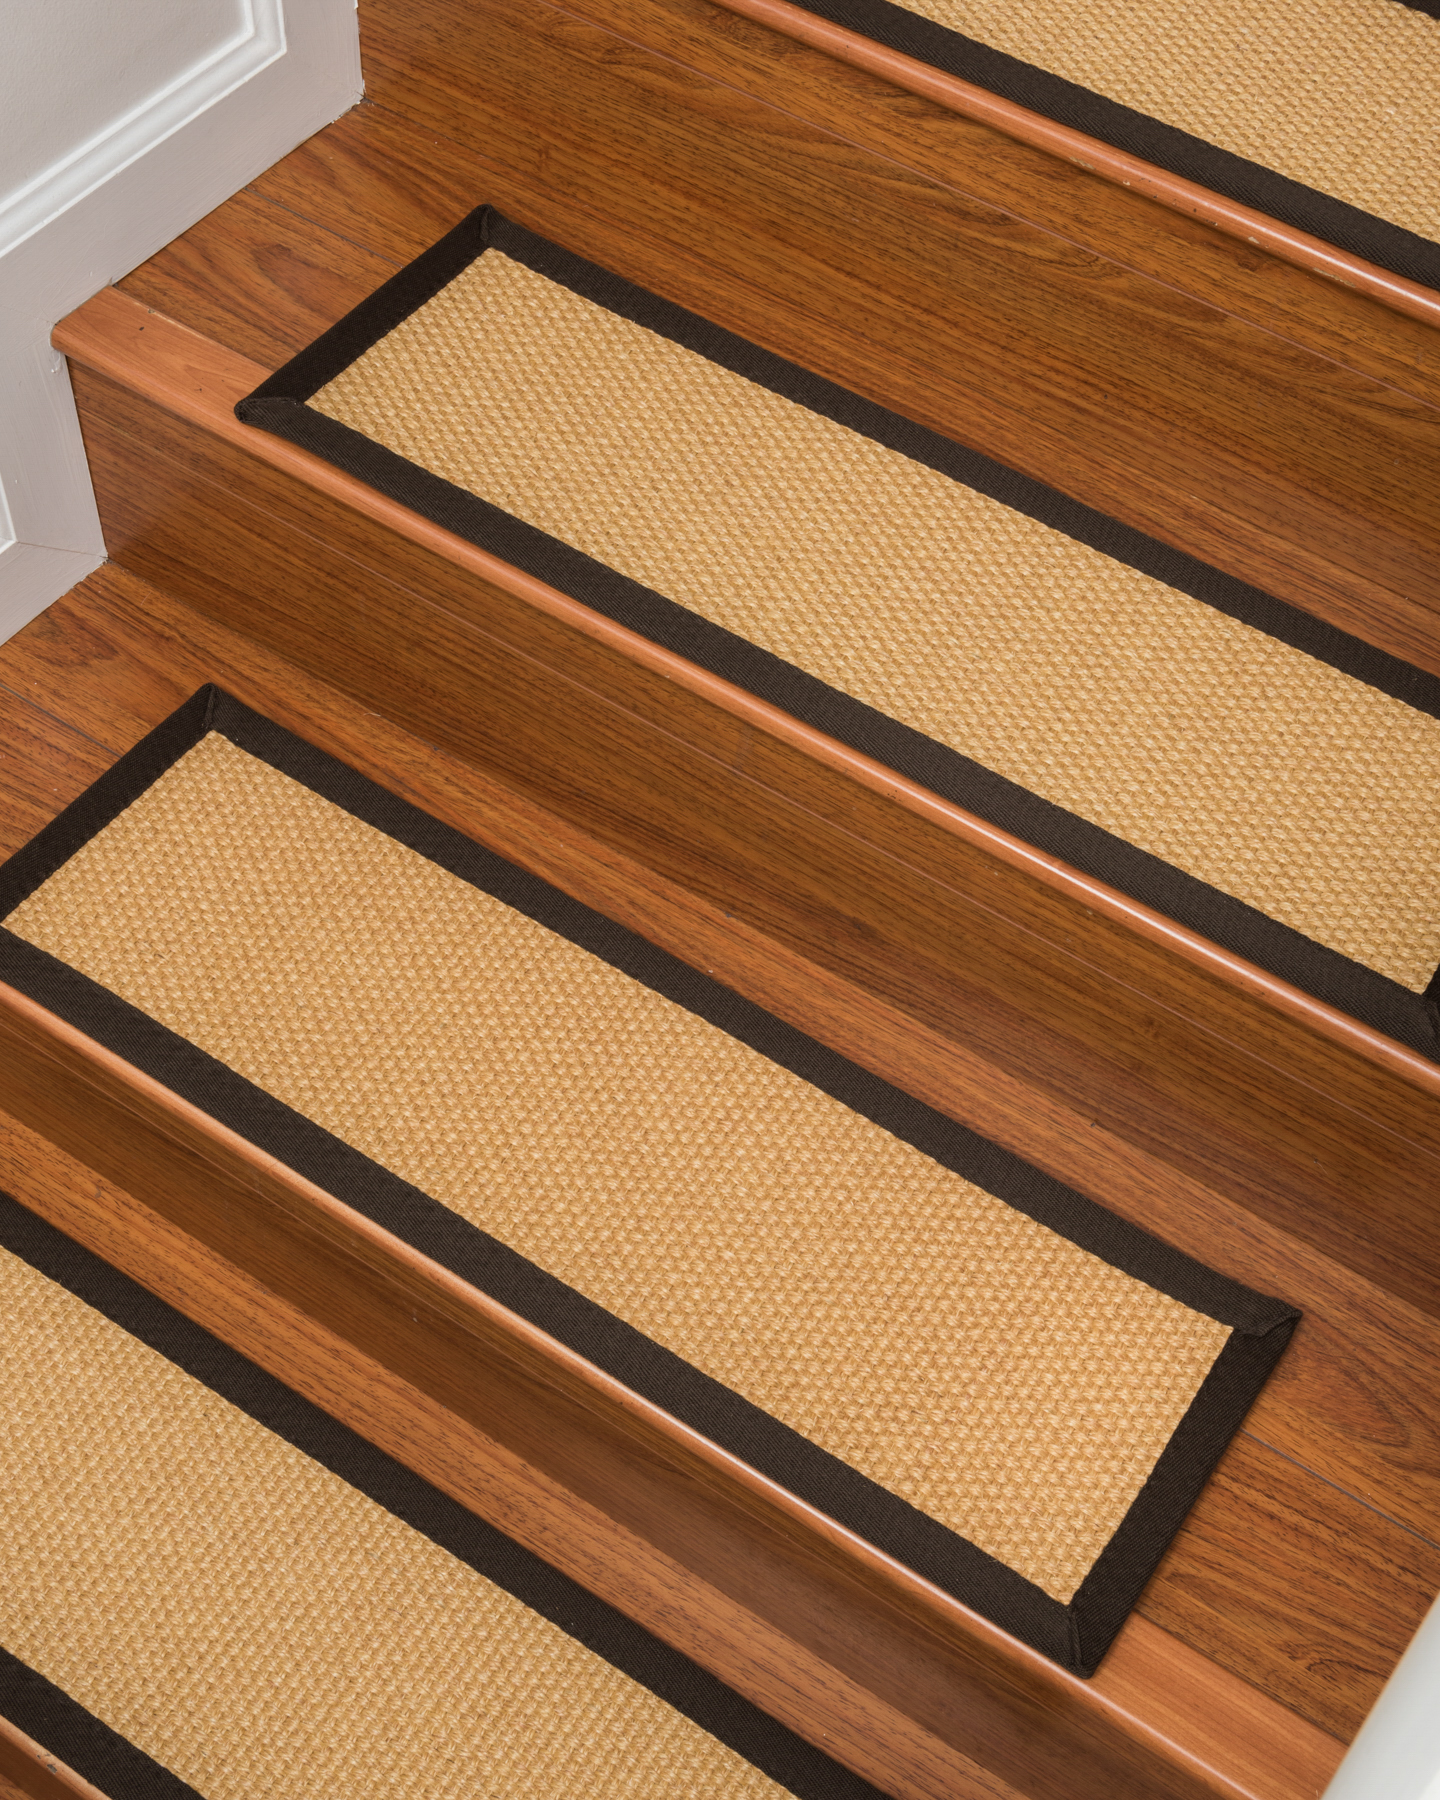 Charmant Natural Area Rugs 100% Natural Fiber Lowell, Sisal Tan, Handmade Stair  Treads Carpet